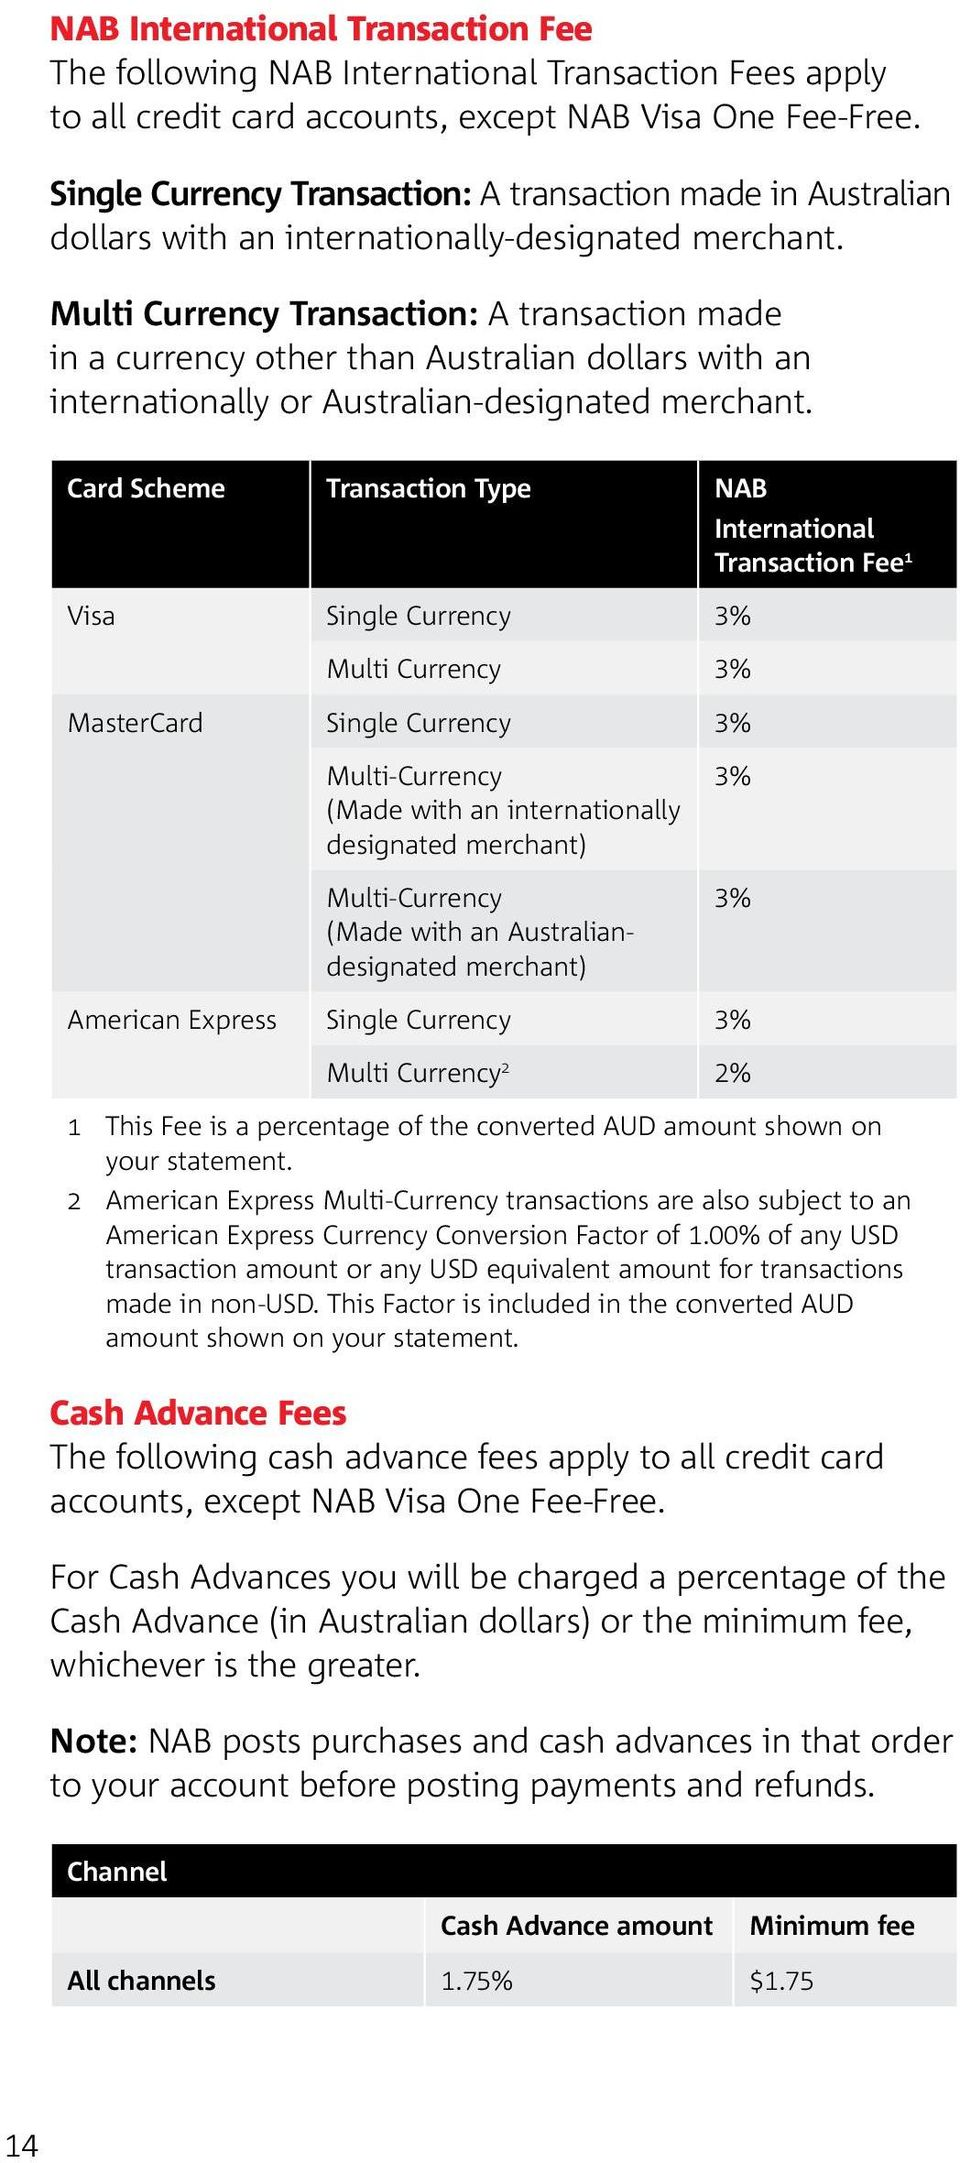 Multi Currency Transaction: A transaction made in a currency other than Australian dollars with an internationally or Australian-designated merchant.